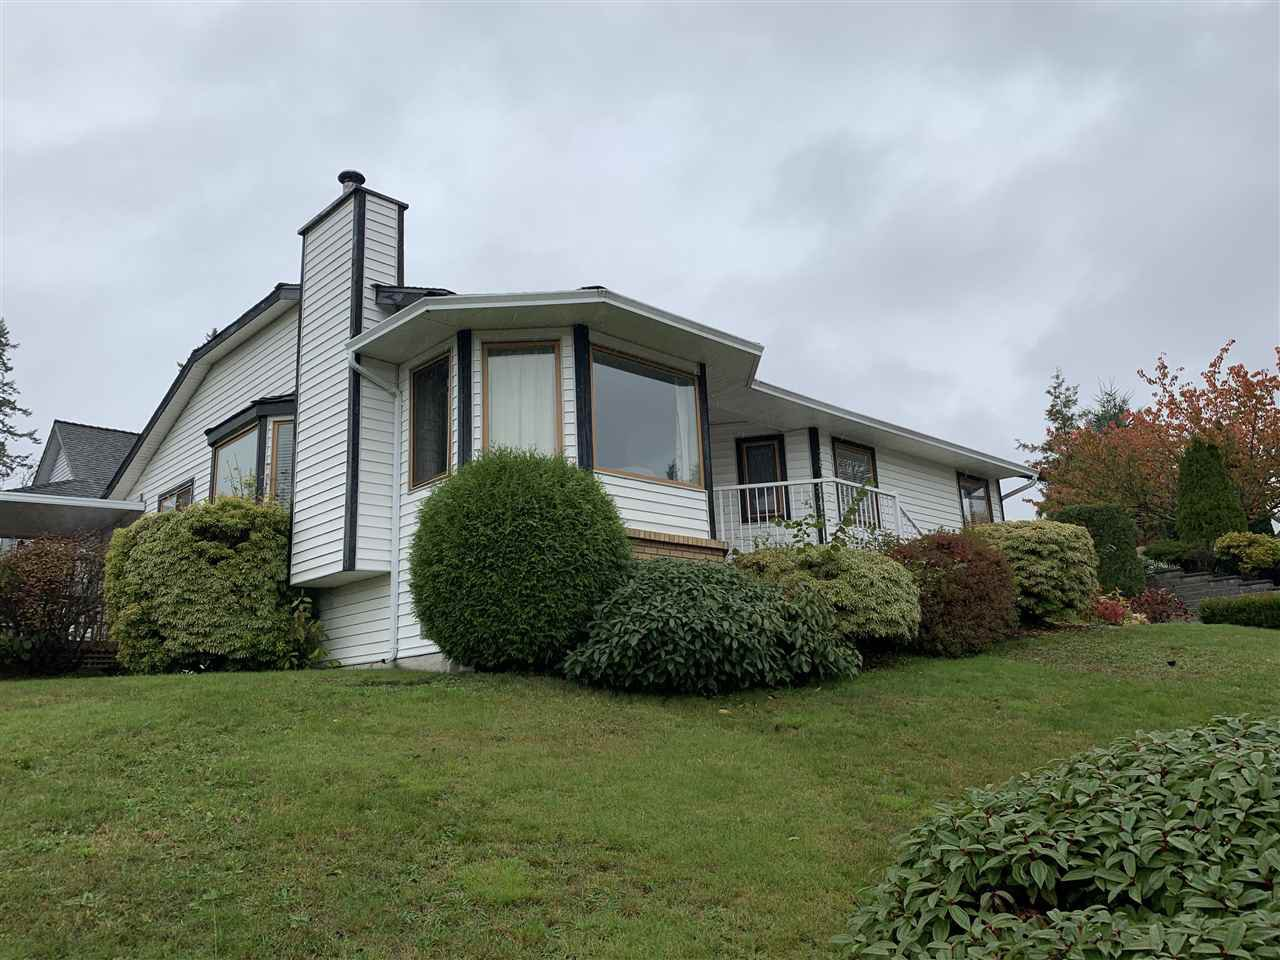 Main Photo: 7819 167A Street in Surrey: Fleetwood Tynehead House for sale : MLS®# R2414478